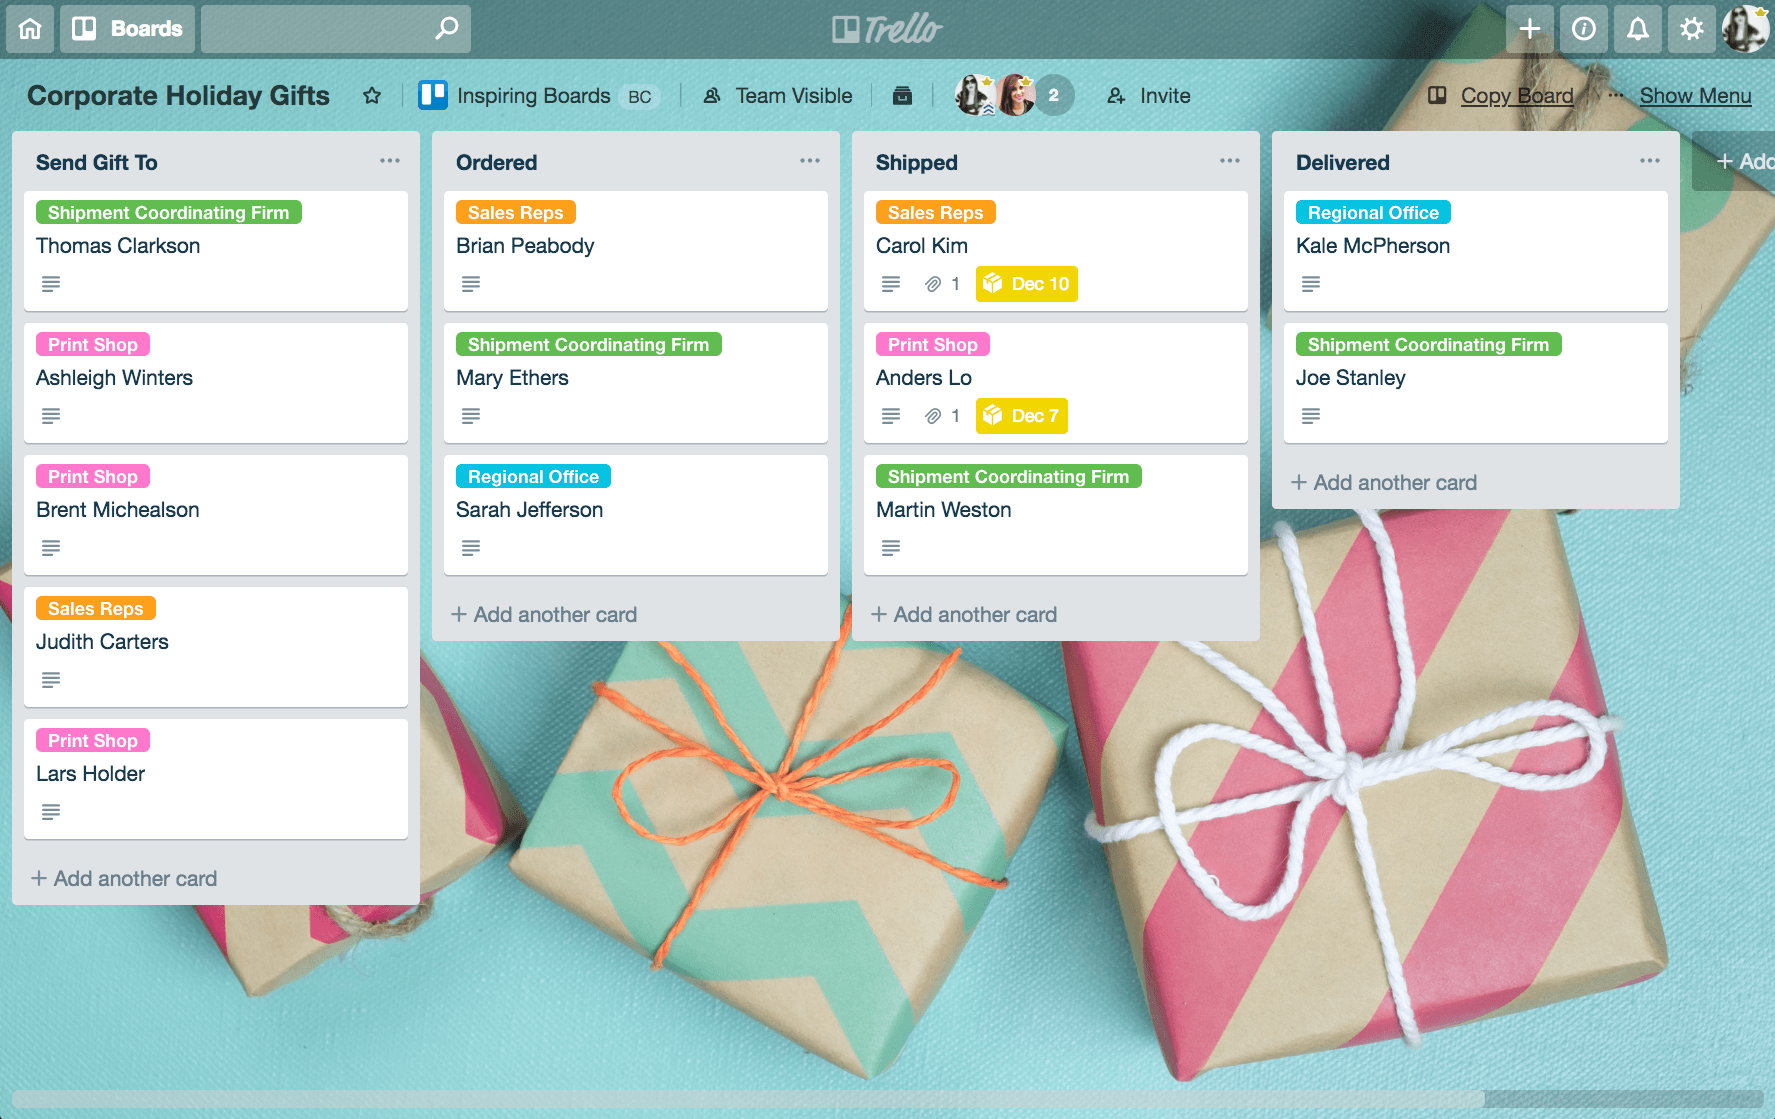 Trello Holiday Hacks: Corporate Holiday Gifts